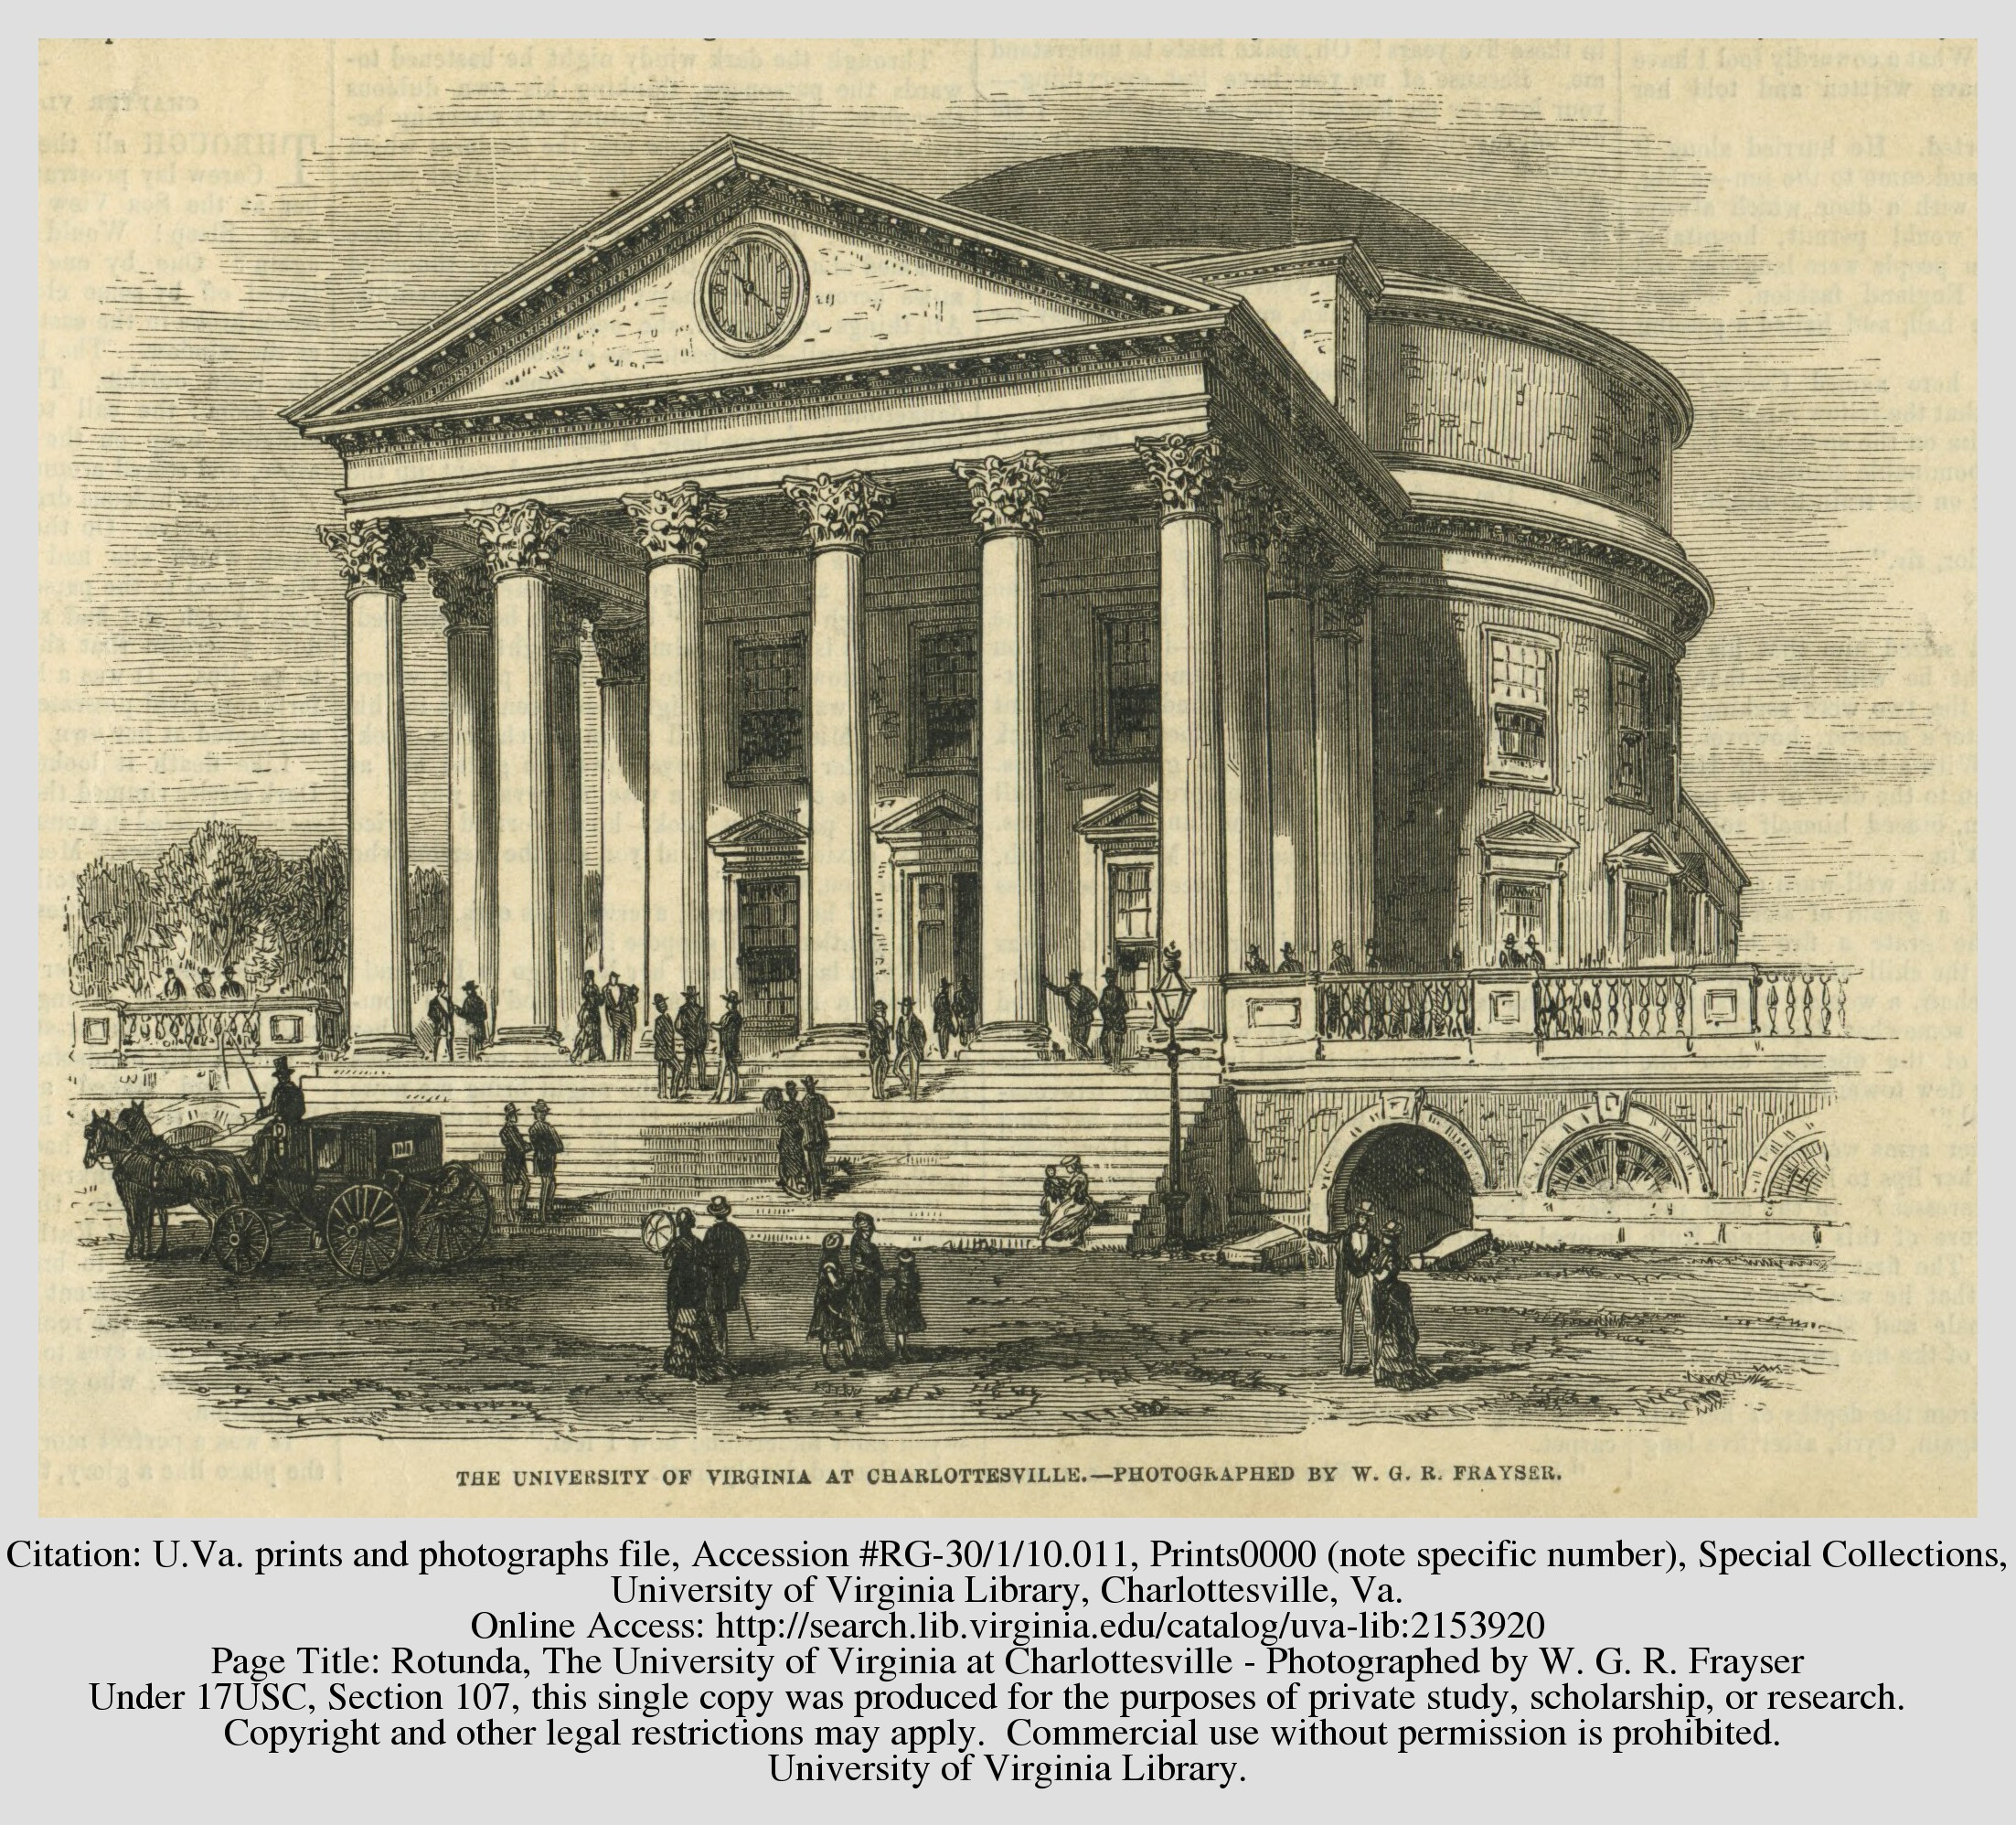 1876 drawing of the Rotunda by W.G.R. Frayser. Courtesy of the Library of the University of Virginia.